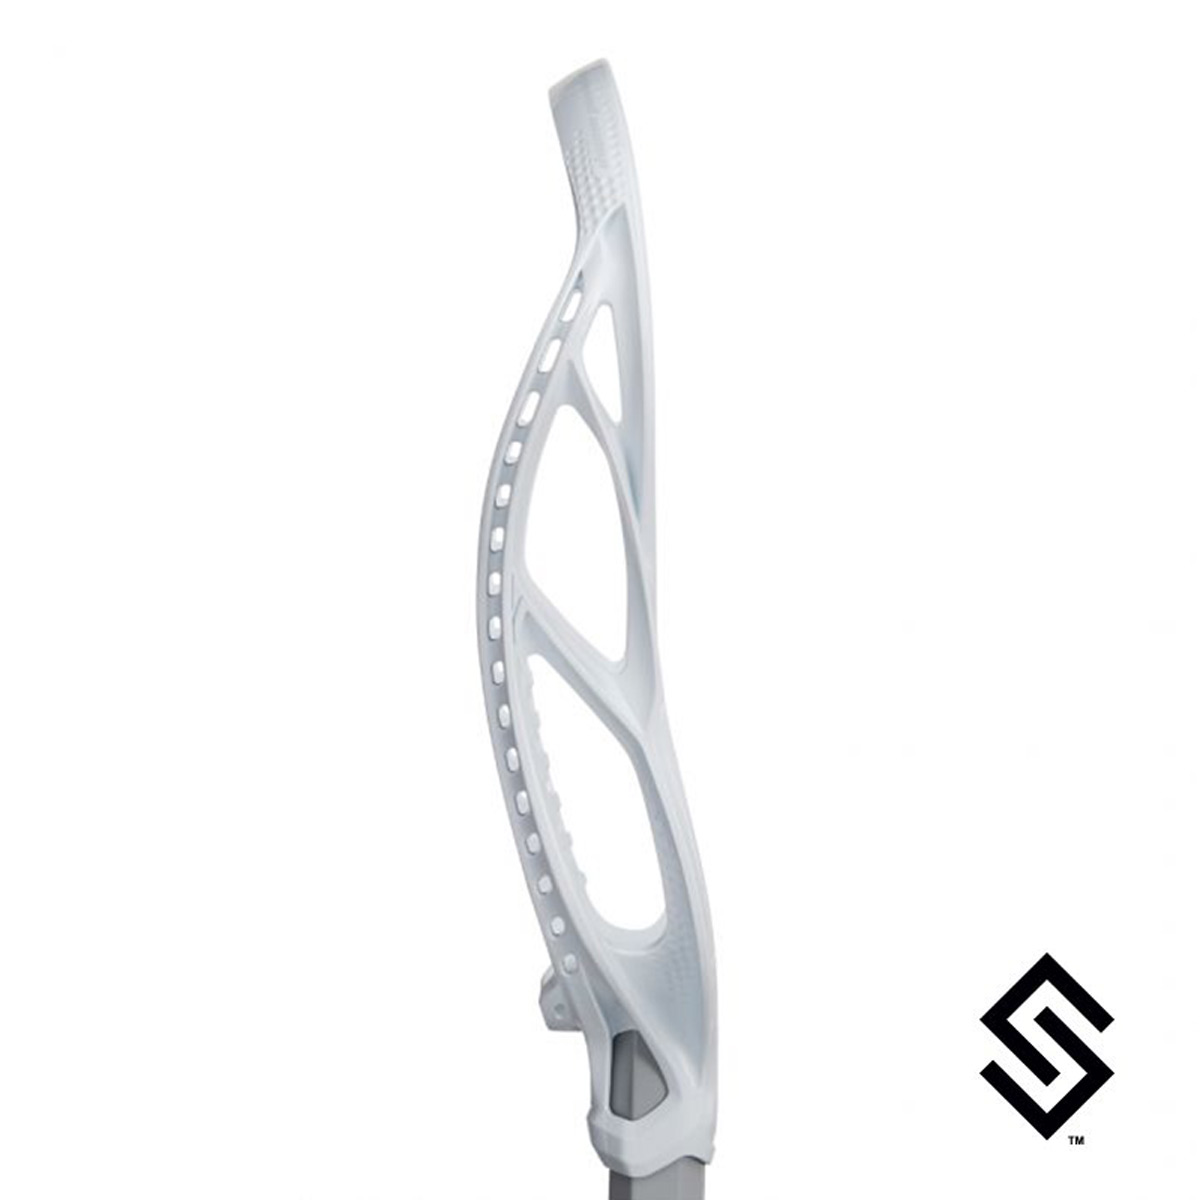 STX Stallion OMEGA Lacrosse Head